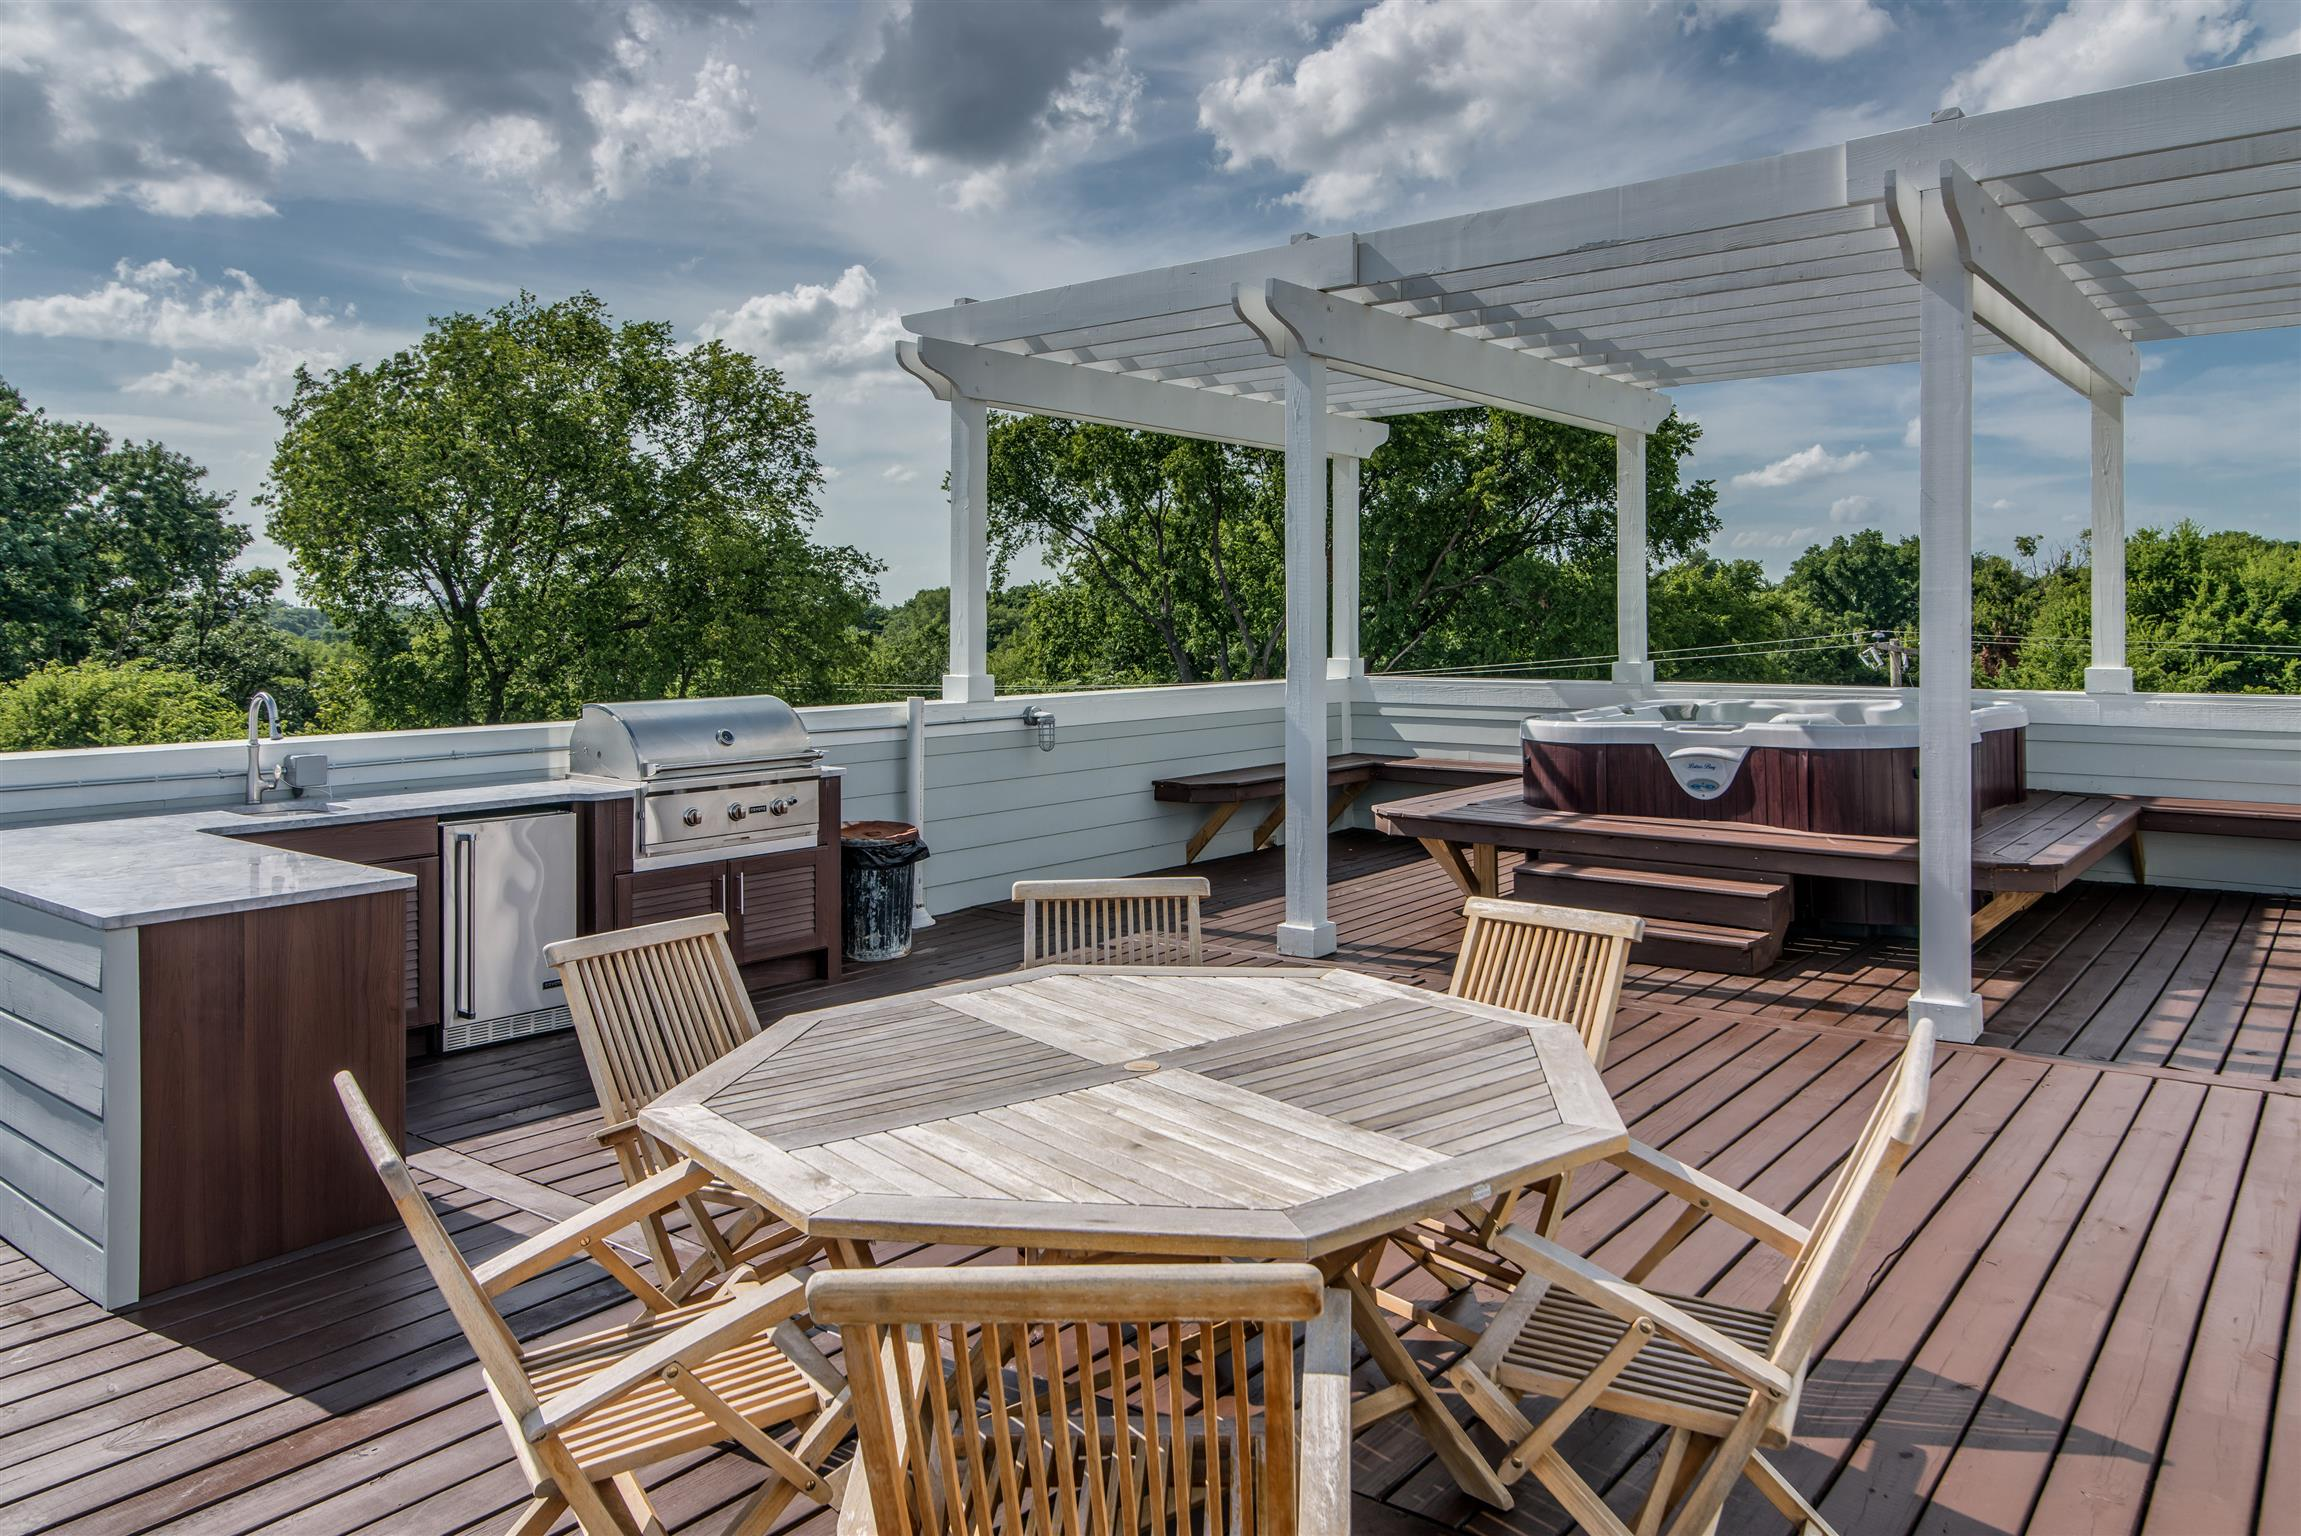 AMAZING view of downtown, hot tub, grill, and firepit on rooftop deck. Wrap around porches, Savant surround sound on all floors, corner lot, fully fenced-in yards,  3 car garage. 2200 sq ft of outdoor deck space! Security system, NEST thermostats, 4 bed / 4 bath, game room, 2 fireplaces, body sprayers in master bath, huge master closet.